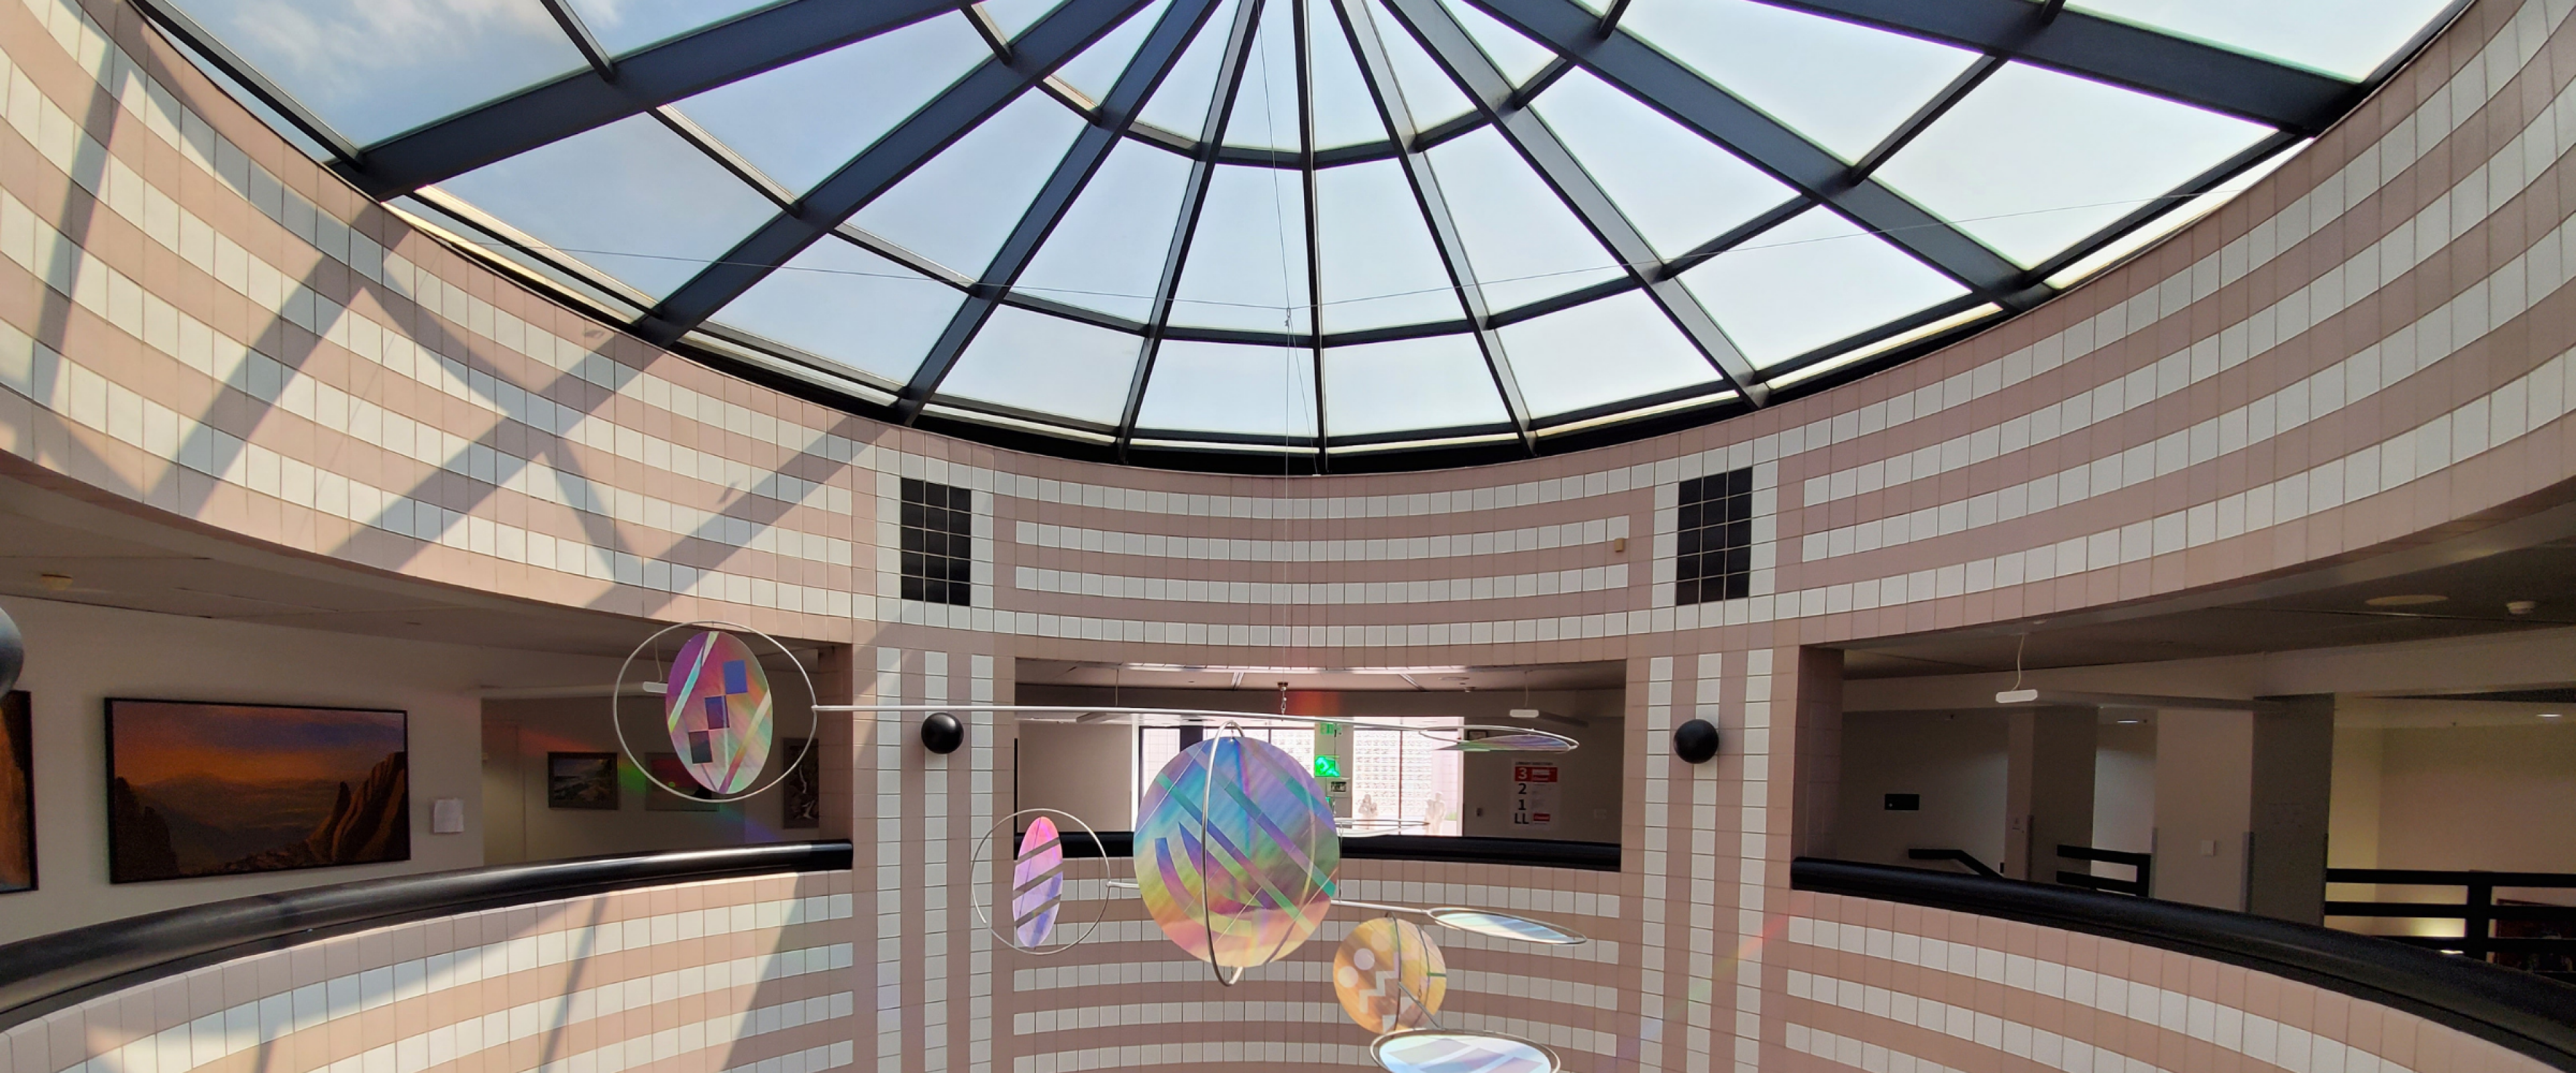 Look up through the round, glass atrium roof in Waldo Library.